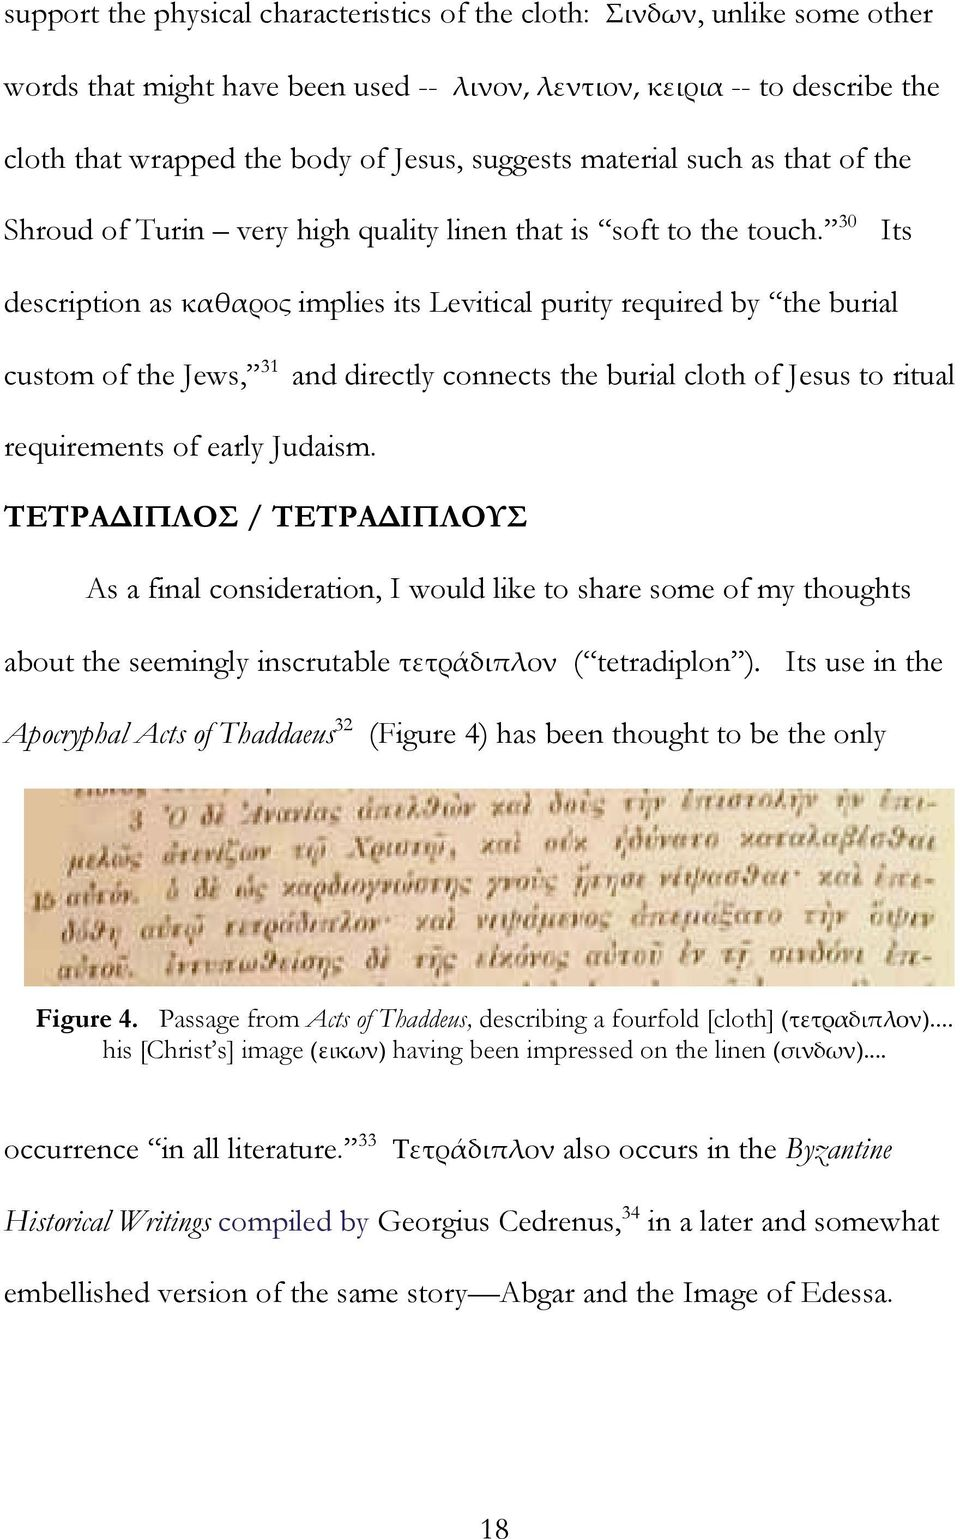 30 Its description as καθαρος implies its Levitical purity required by the burial custom of the Jews, 31 and directly connects the burial cloth of Jesus to ritual requirements of early Judaism.